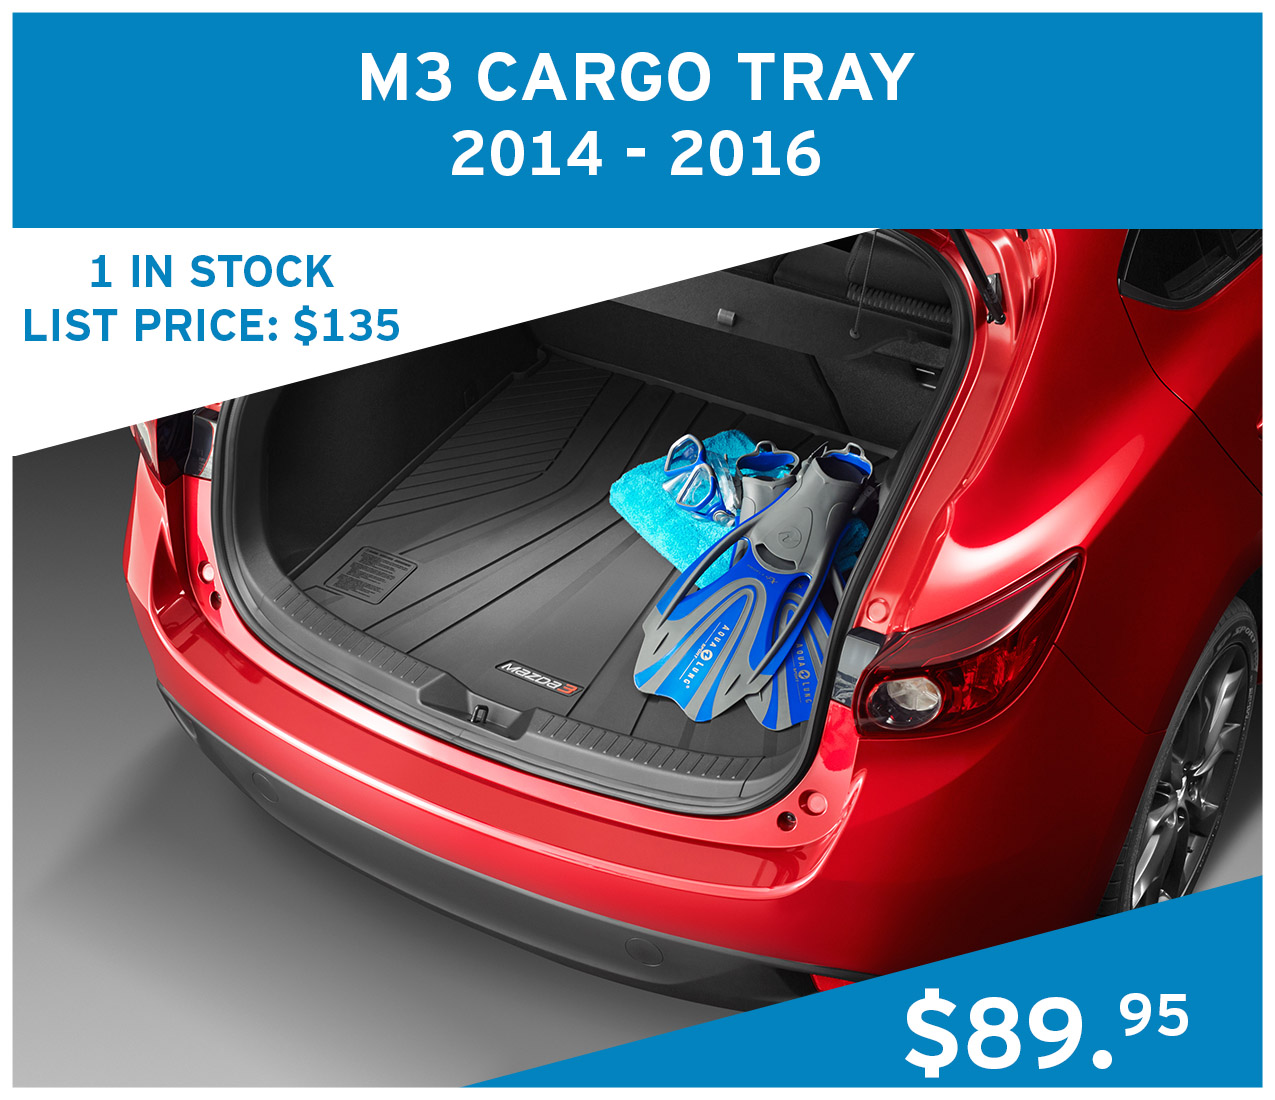 2x Mazda 3 Cargo Tray for 2014 - 2016 vehicles at $89.95